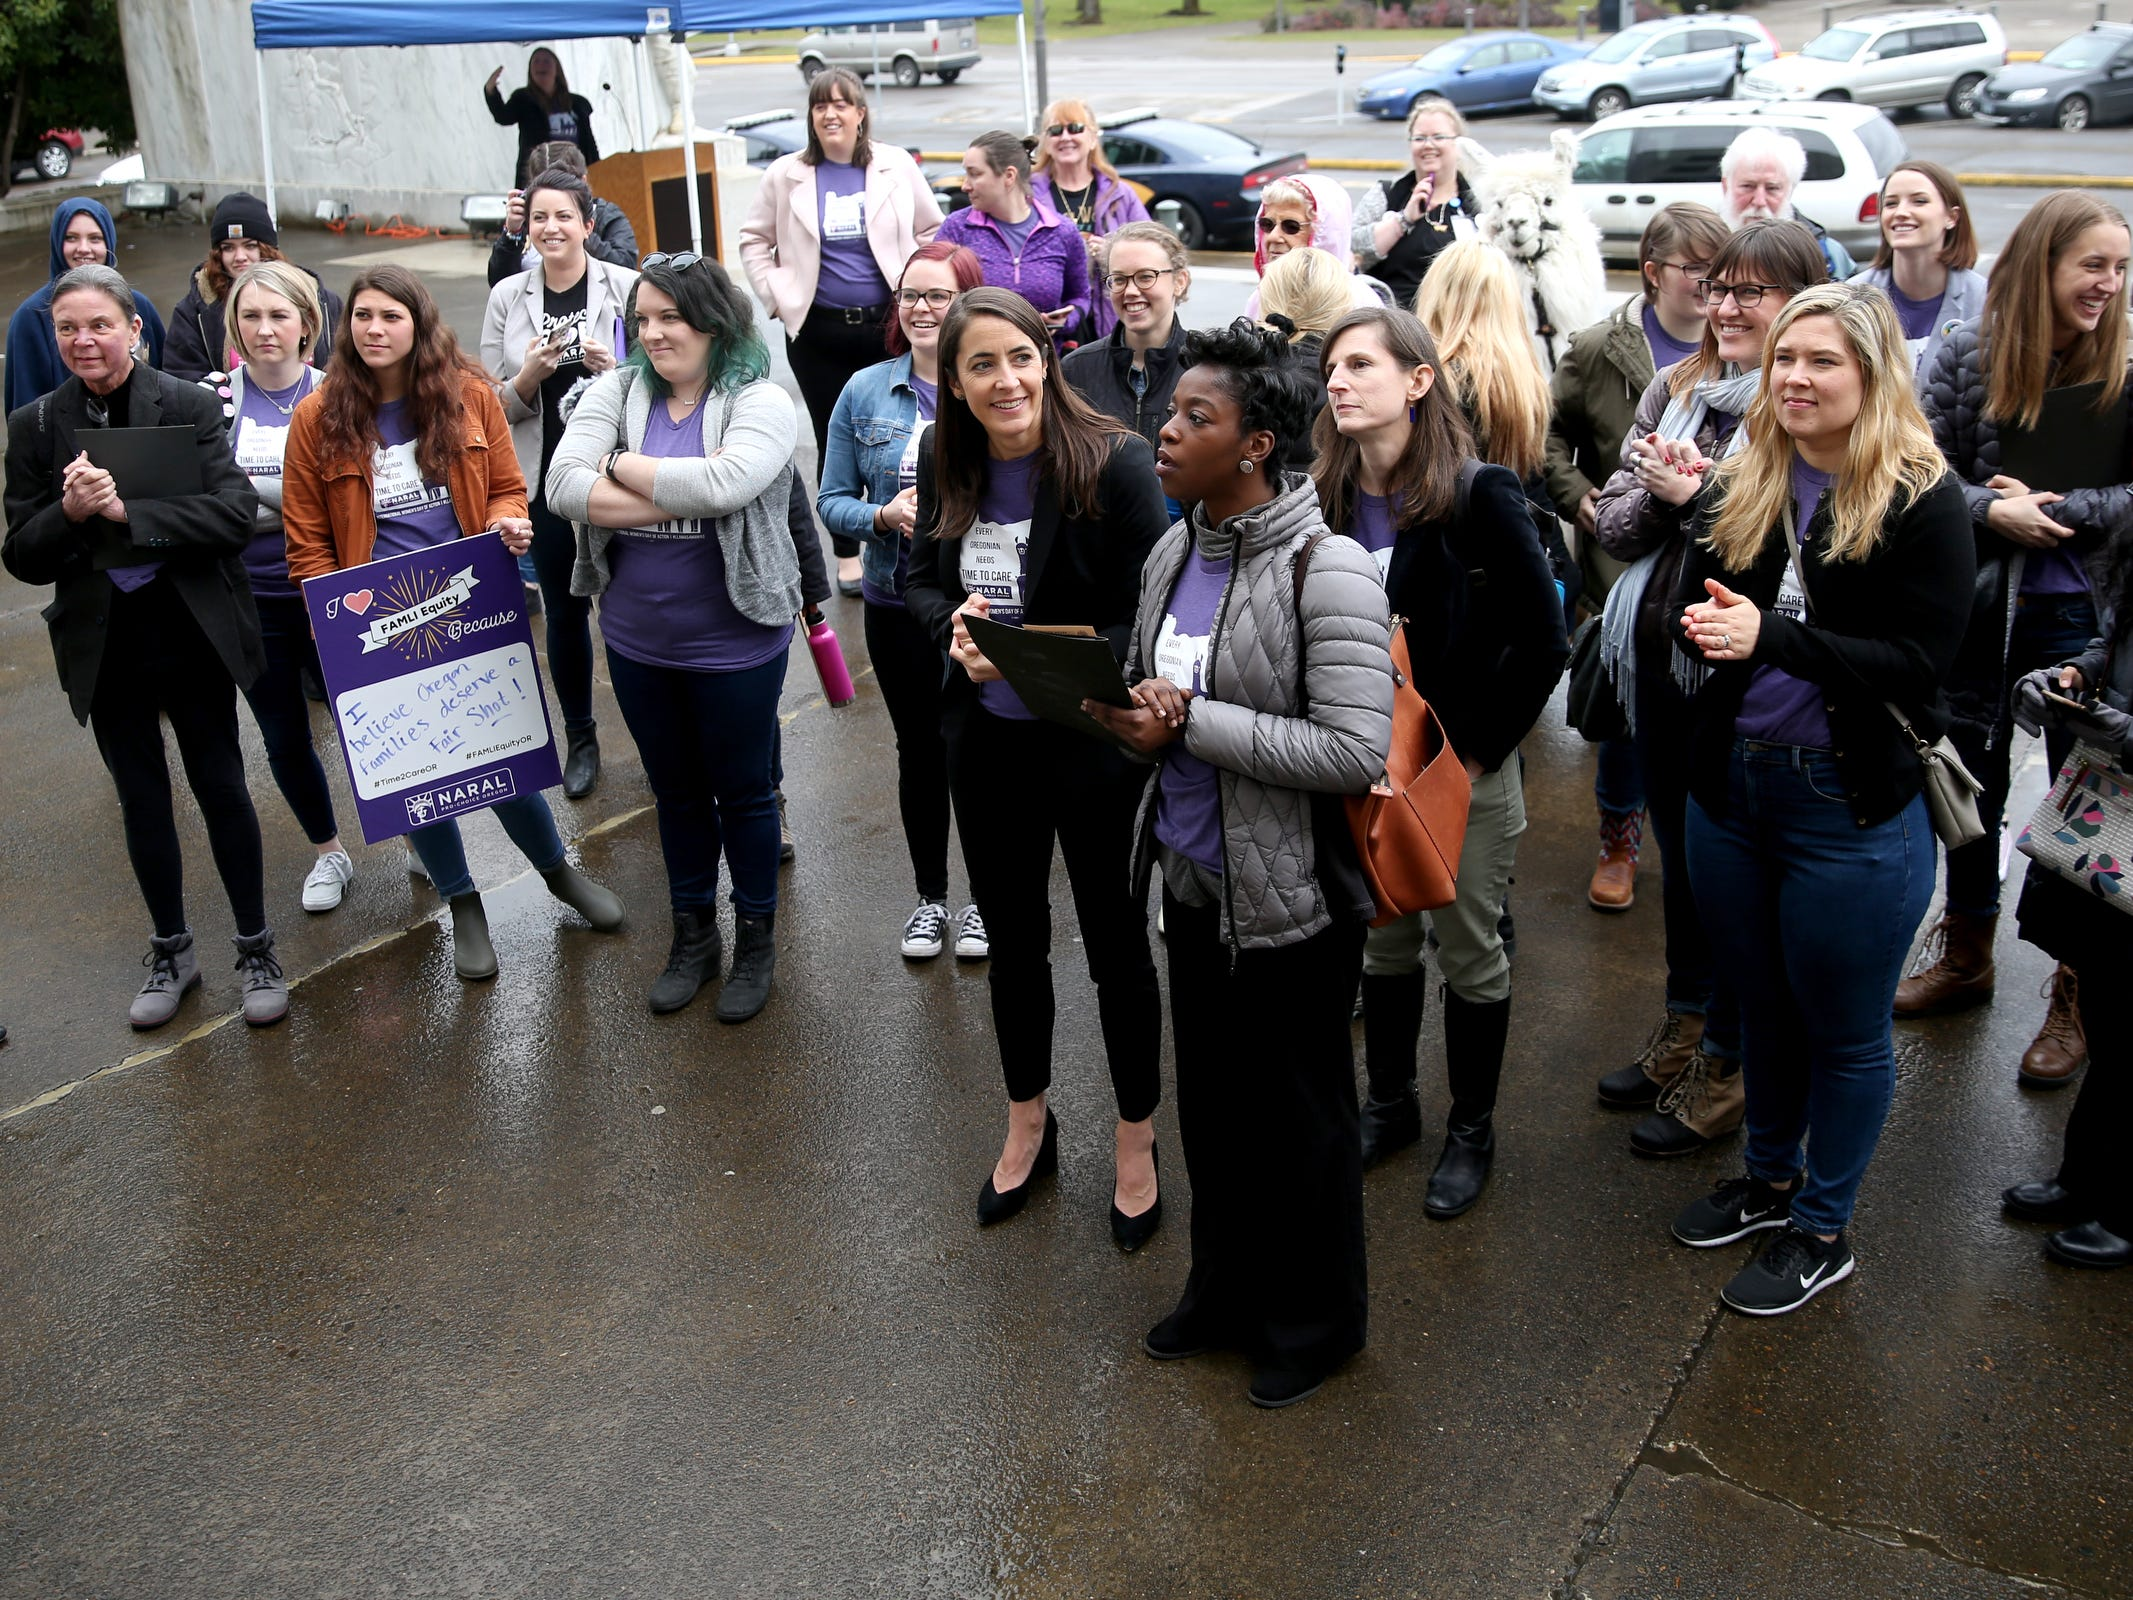 A demonstration for International Women's Day at the Oregon State Capitol in Salem on Friday, March 8, 2019. Many during the rally voiced their support for a state-run family and medical leave insurance program in Oregon.